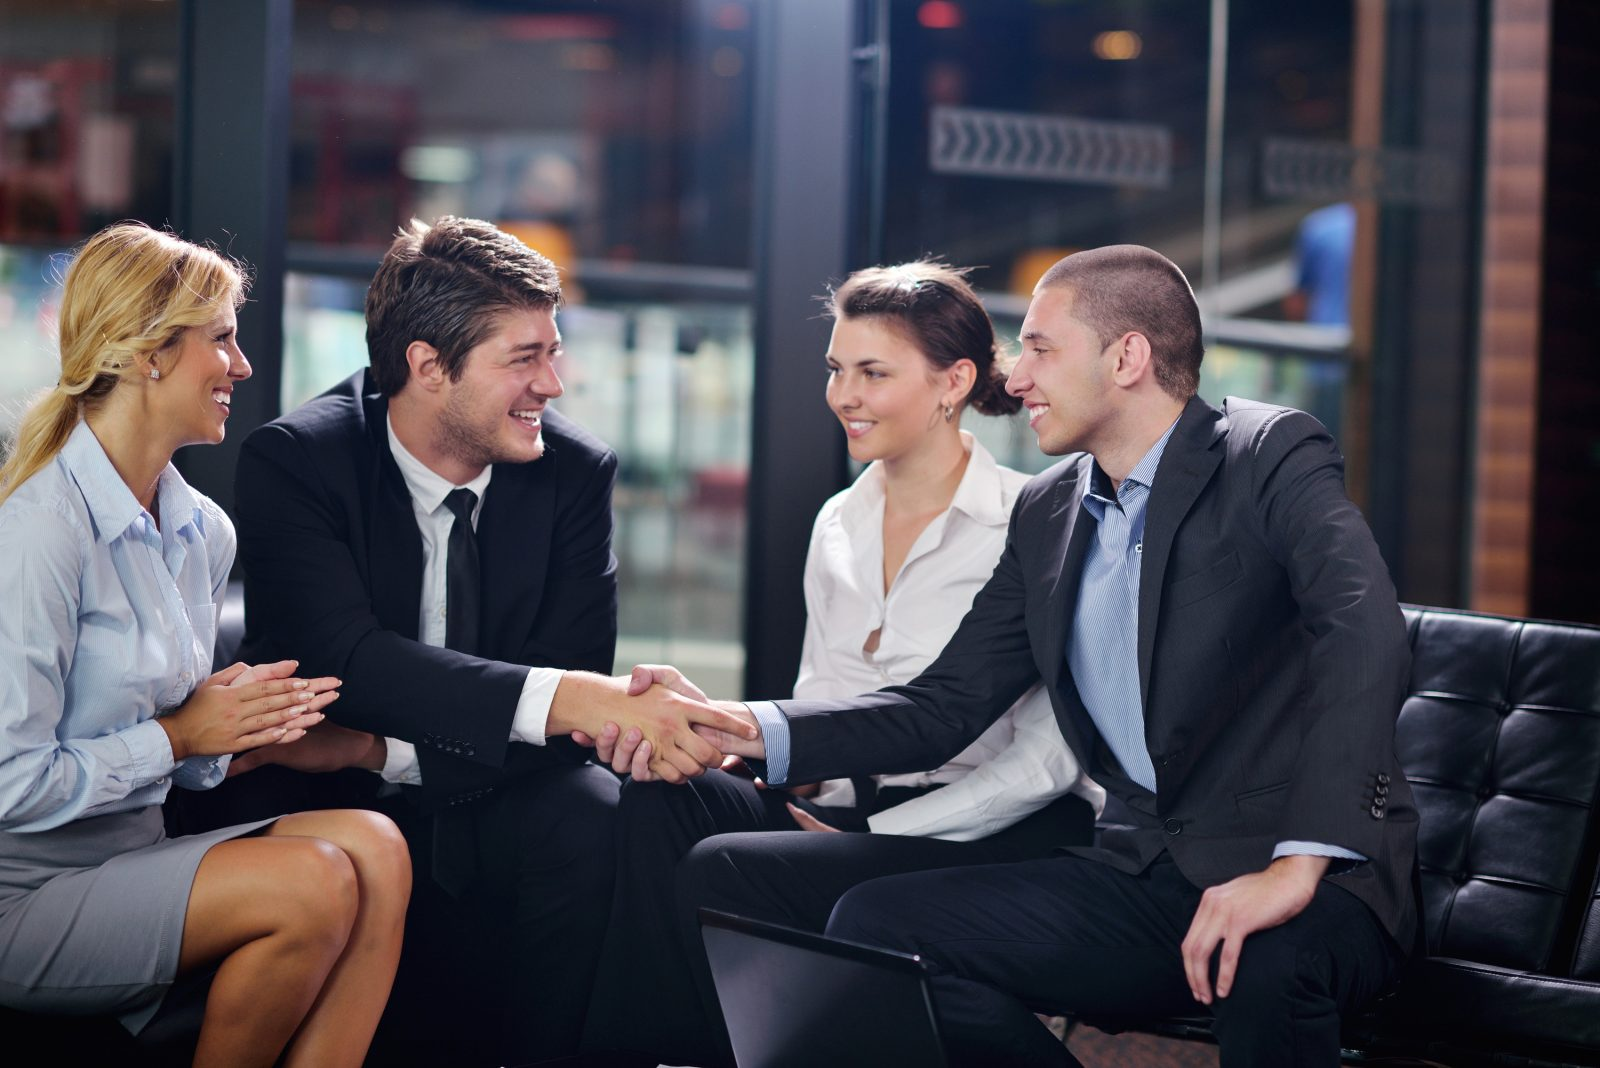 Stock Photo - business people making deal